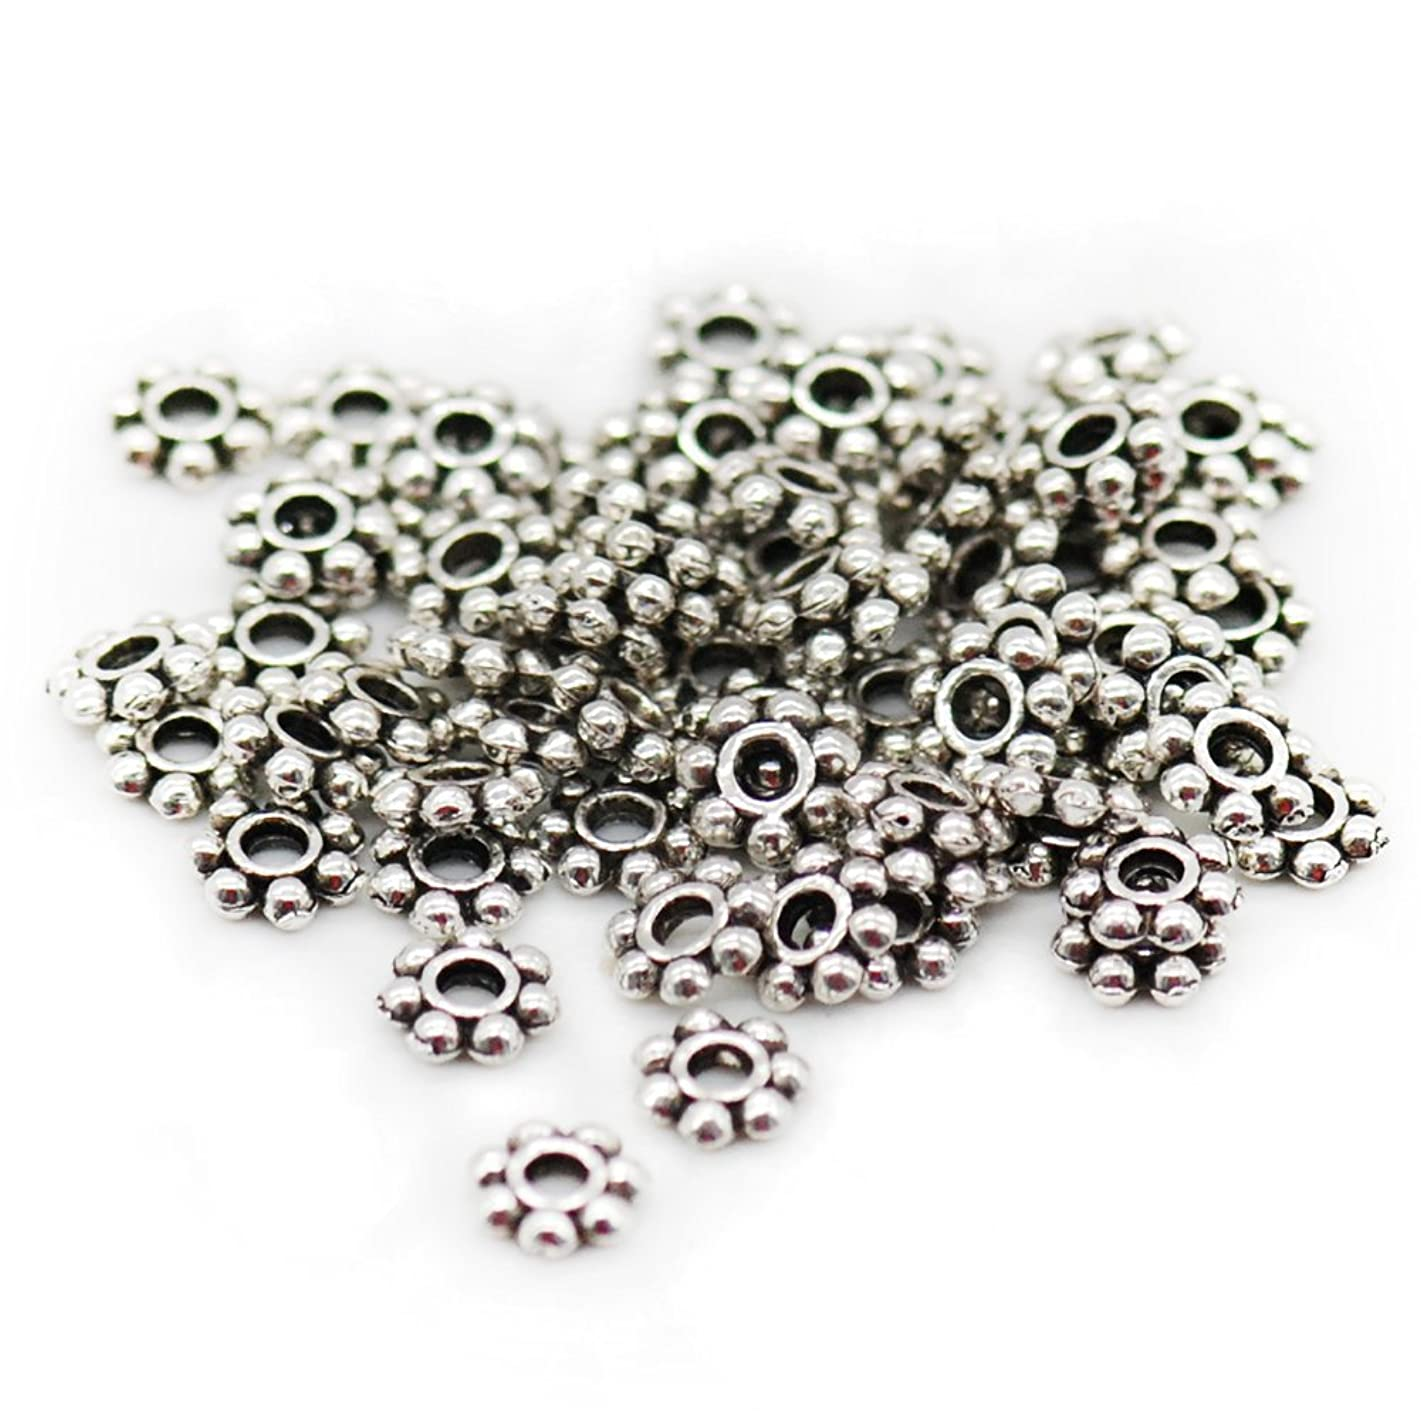 GBSTORE 500 Pcs Tibetan Silver Daisy Spacer Metal Beads 4mm for Jewelry Making